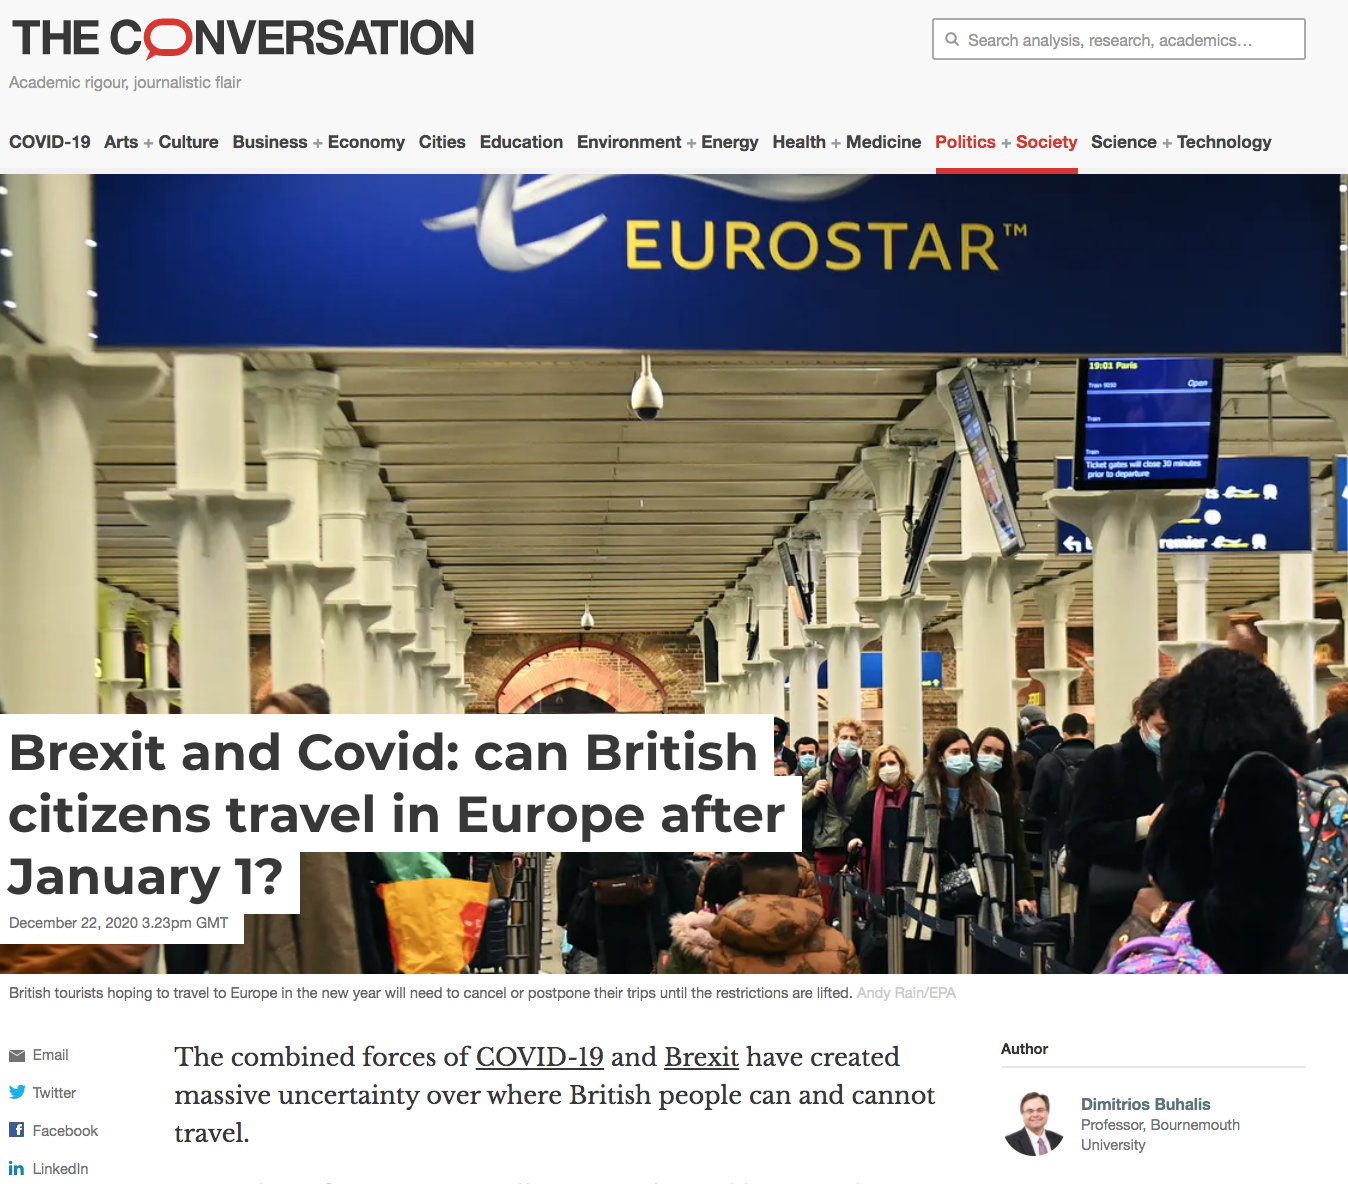 Professor BUHALIS on Brexit and COVID impacts for British Travellers Conversation 22 Dec 20